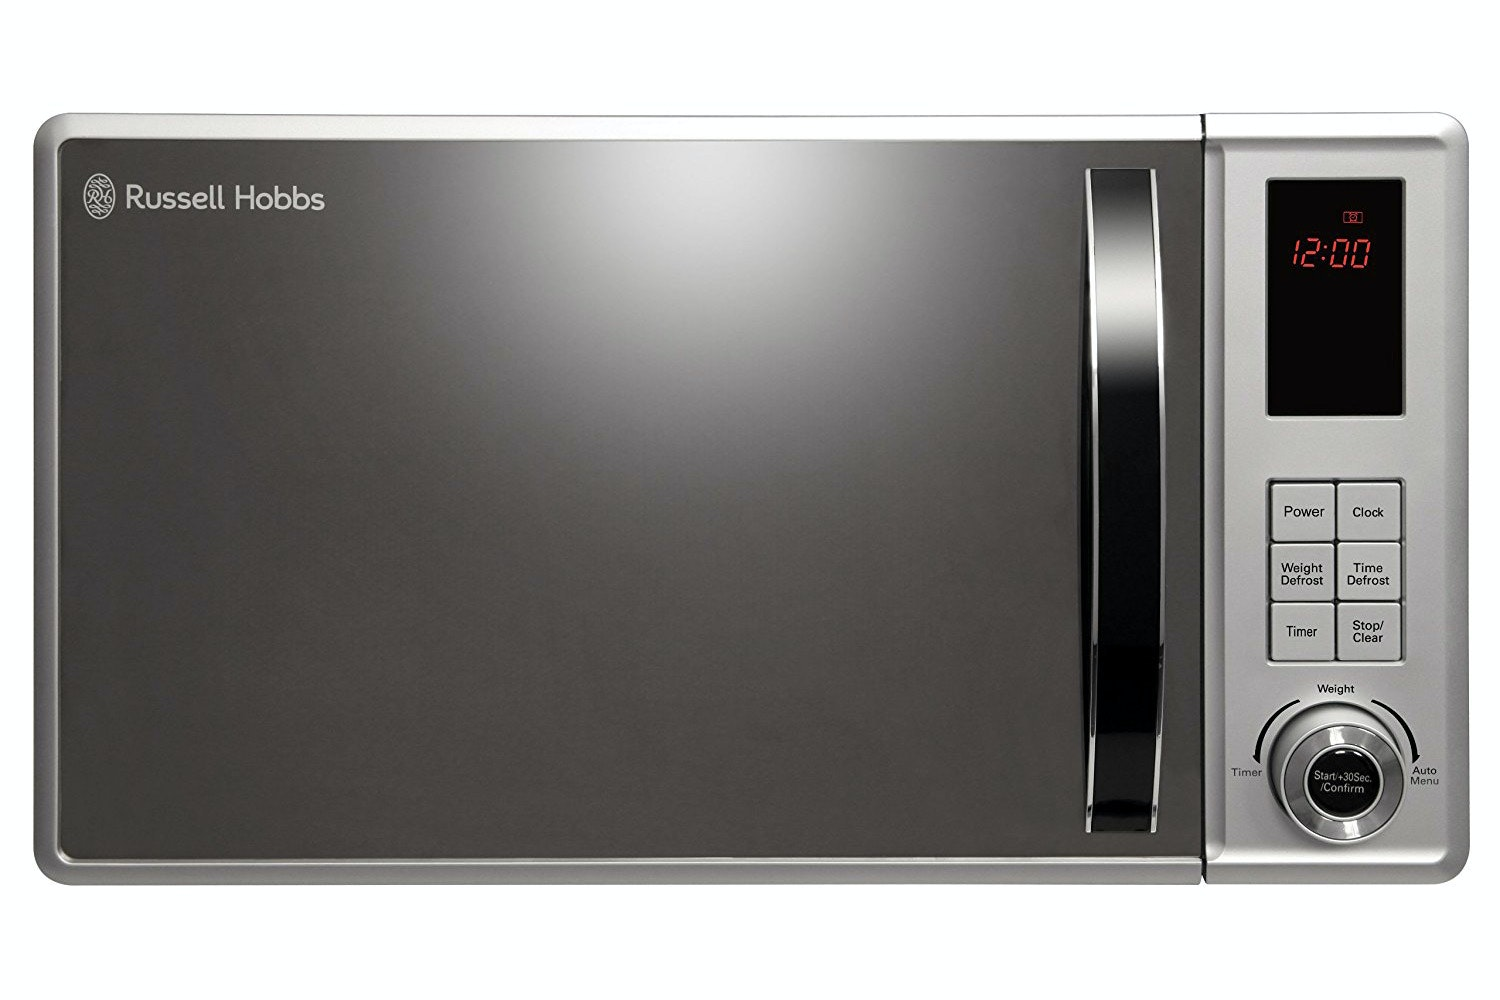 Russell Hobbs 23L 800W Solo Microwave | RHM2362S | Stainless Steel